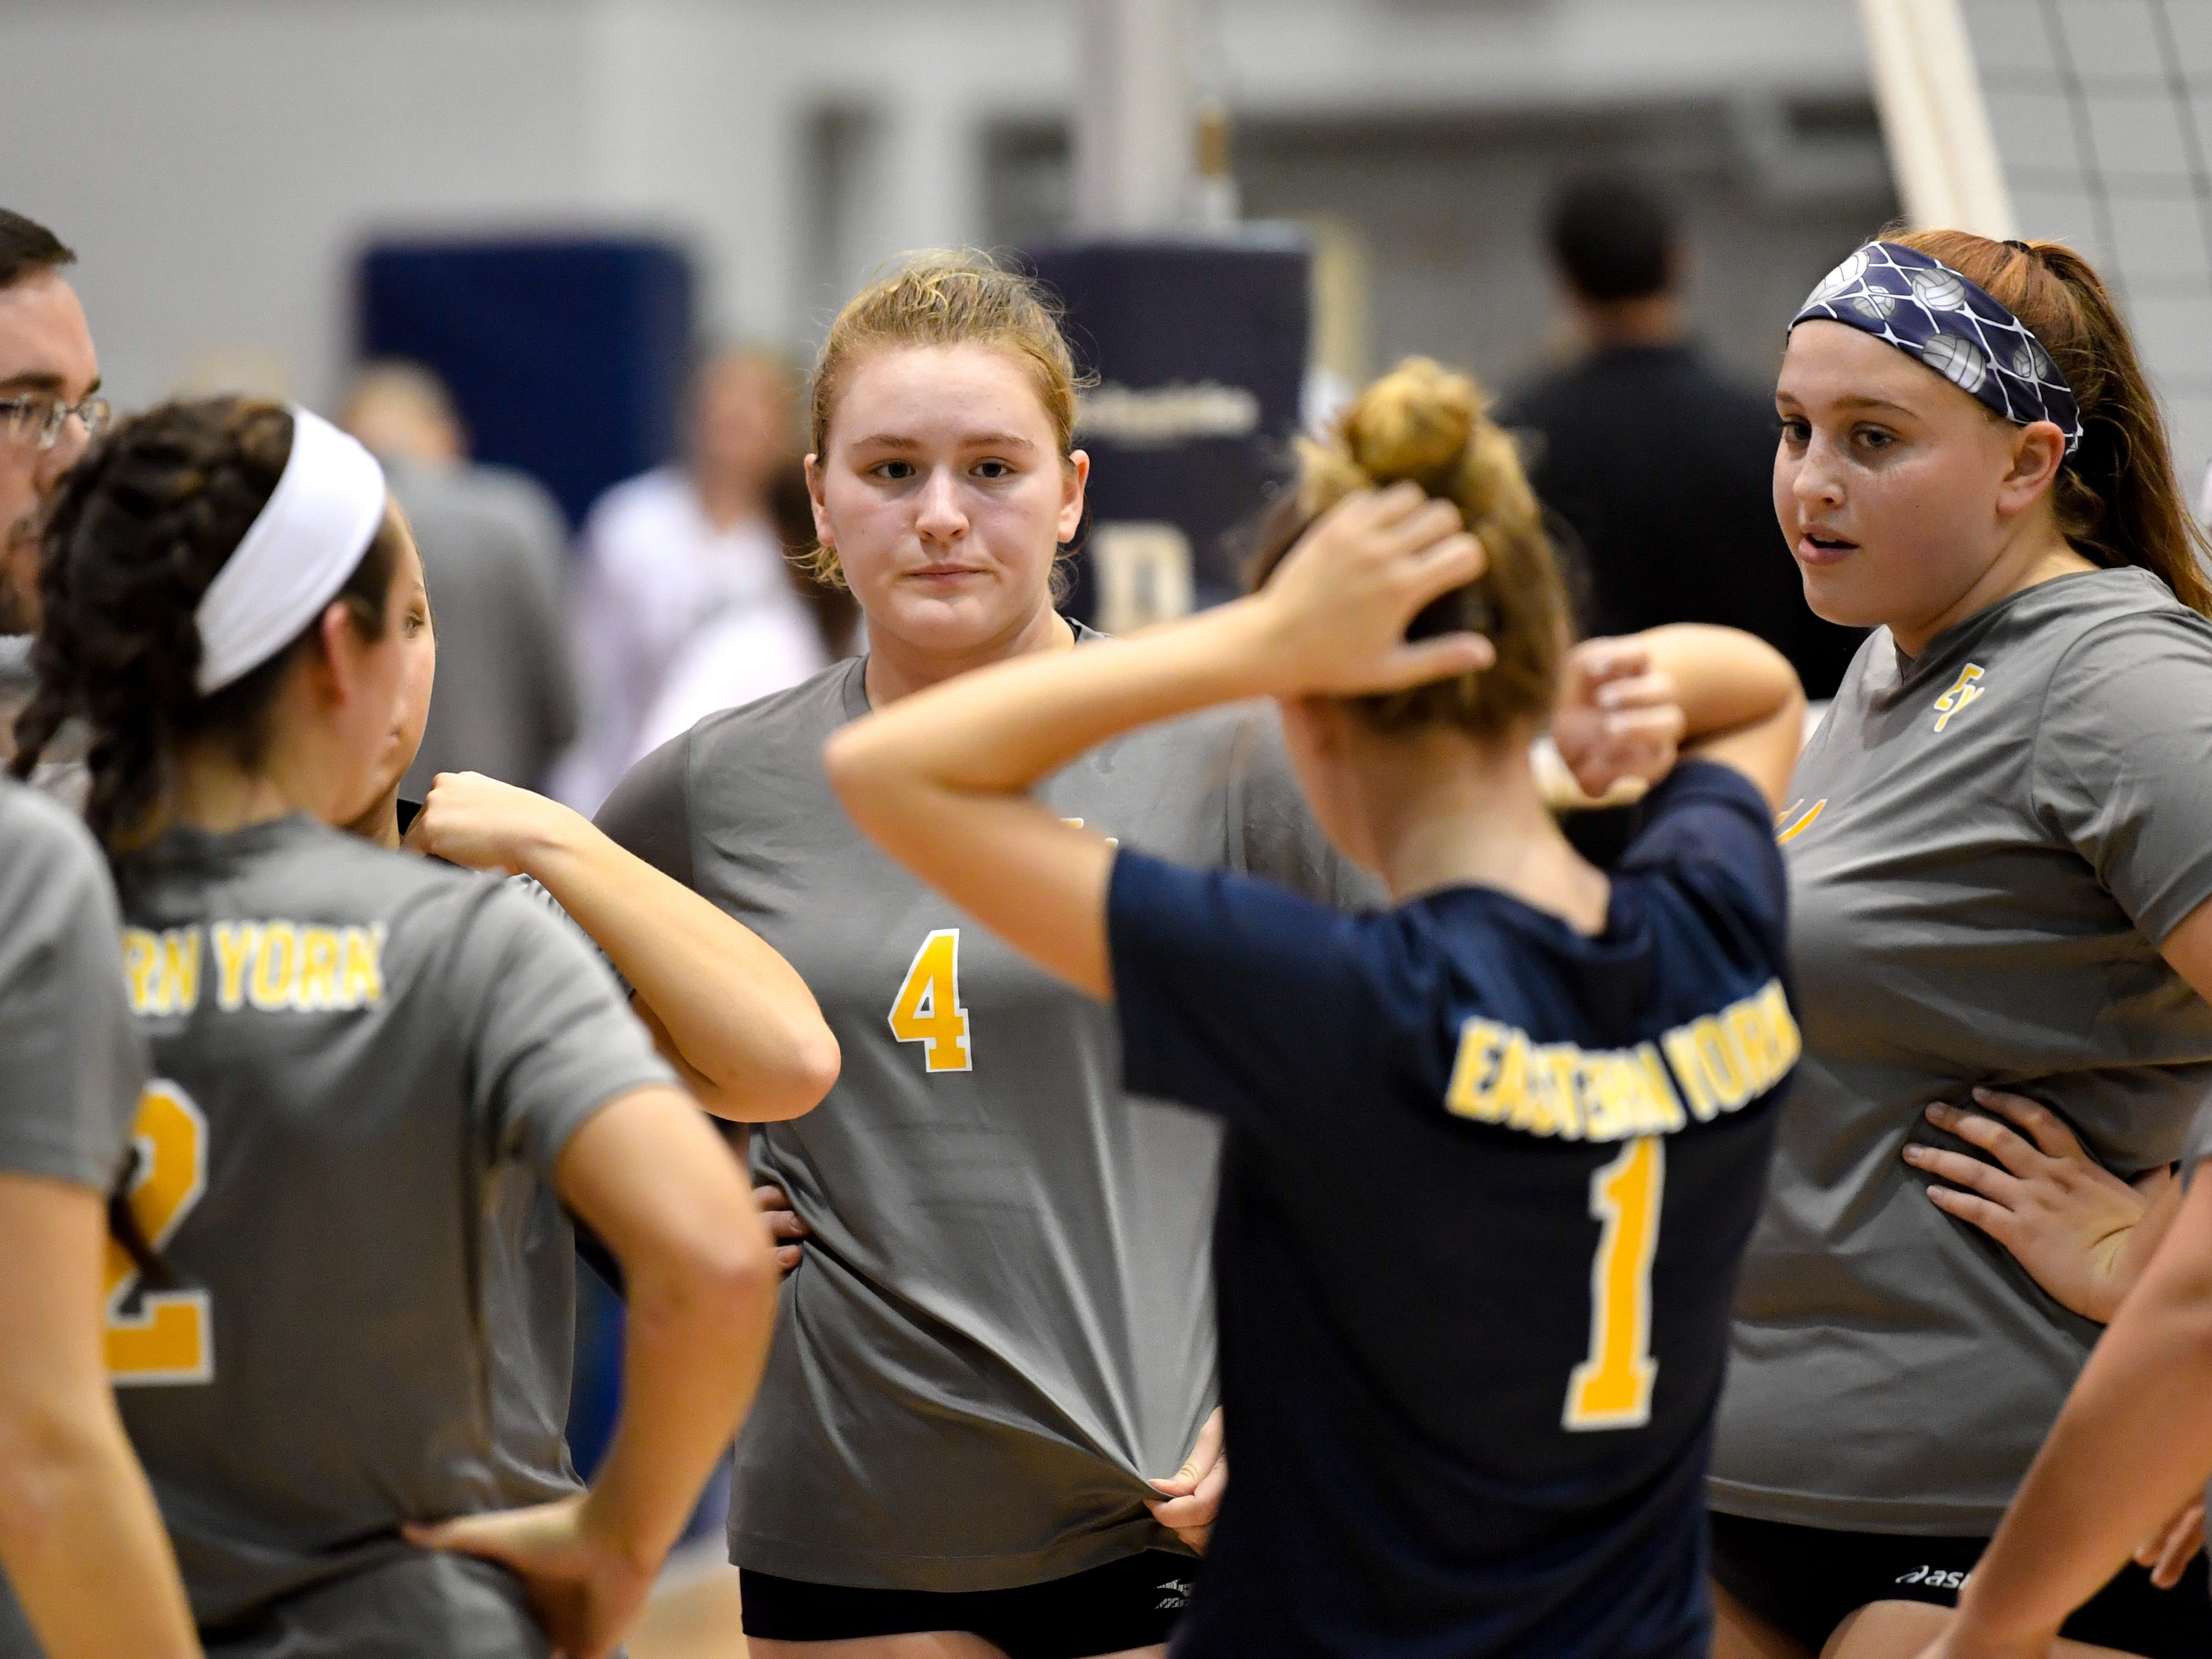 Eastern York talks strategy during a timeout during the YAIAA league volleyball tournament semifinals between Eastern York and Delone Catholic, Tuesday, October 23, 2018. The Squirettes defeated the Golden Knights 3-2.